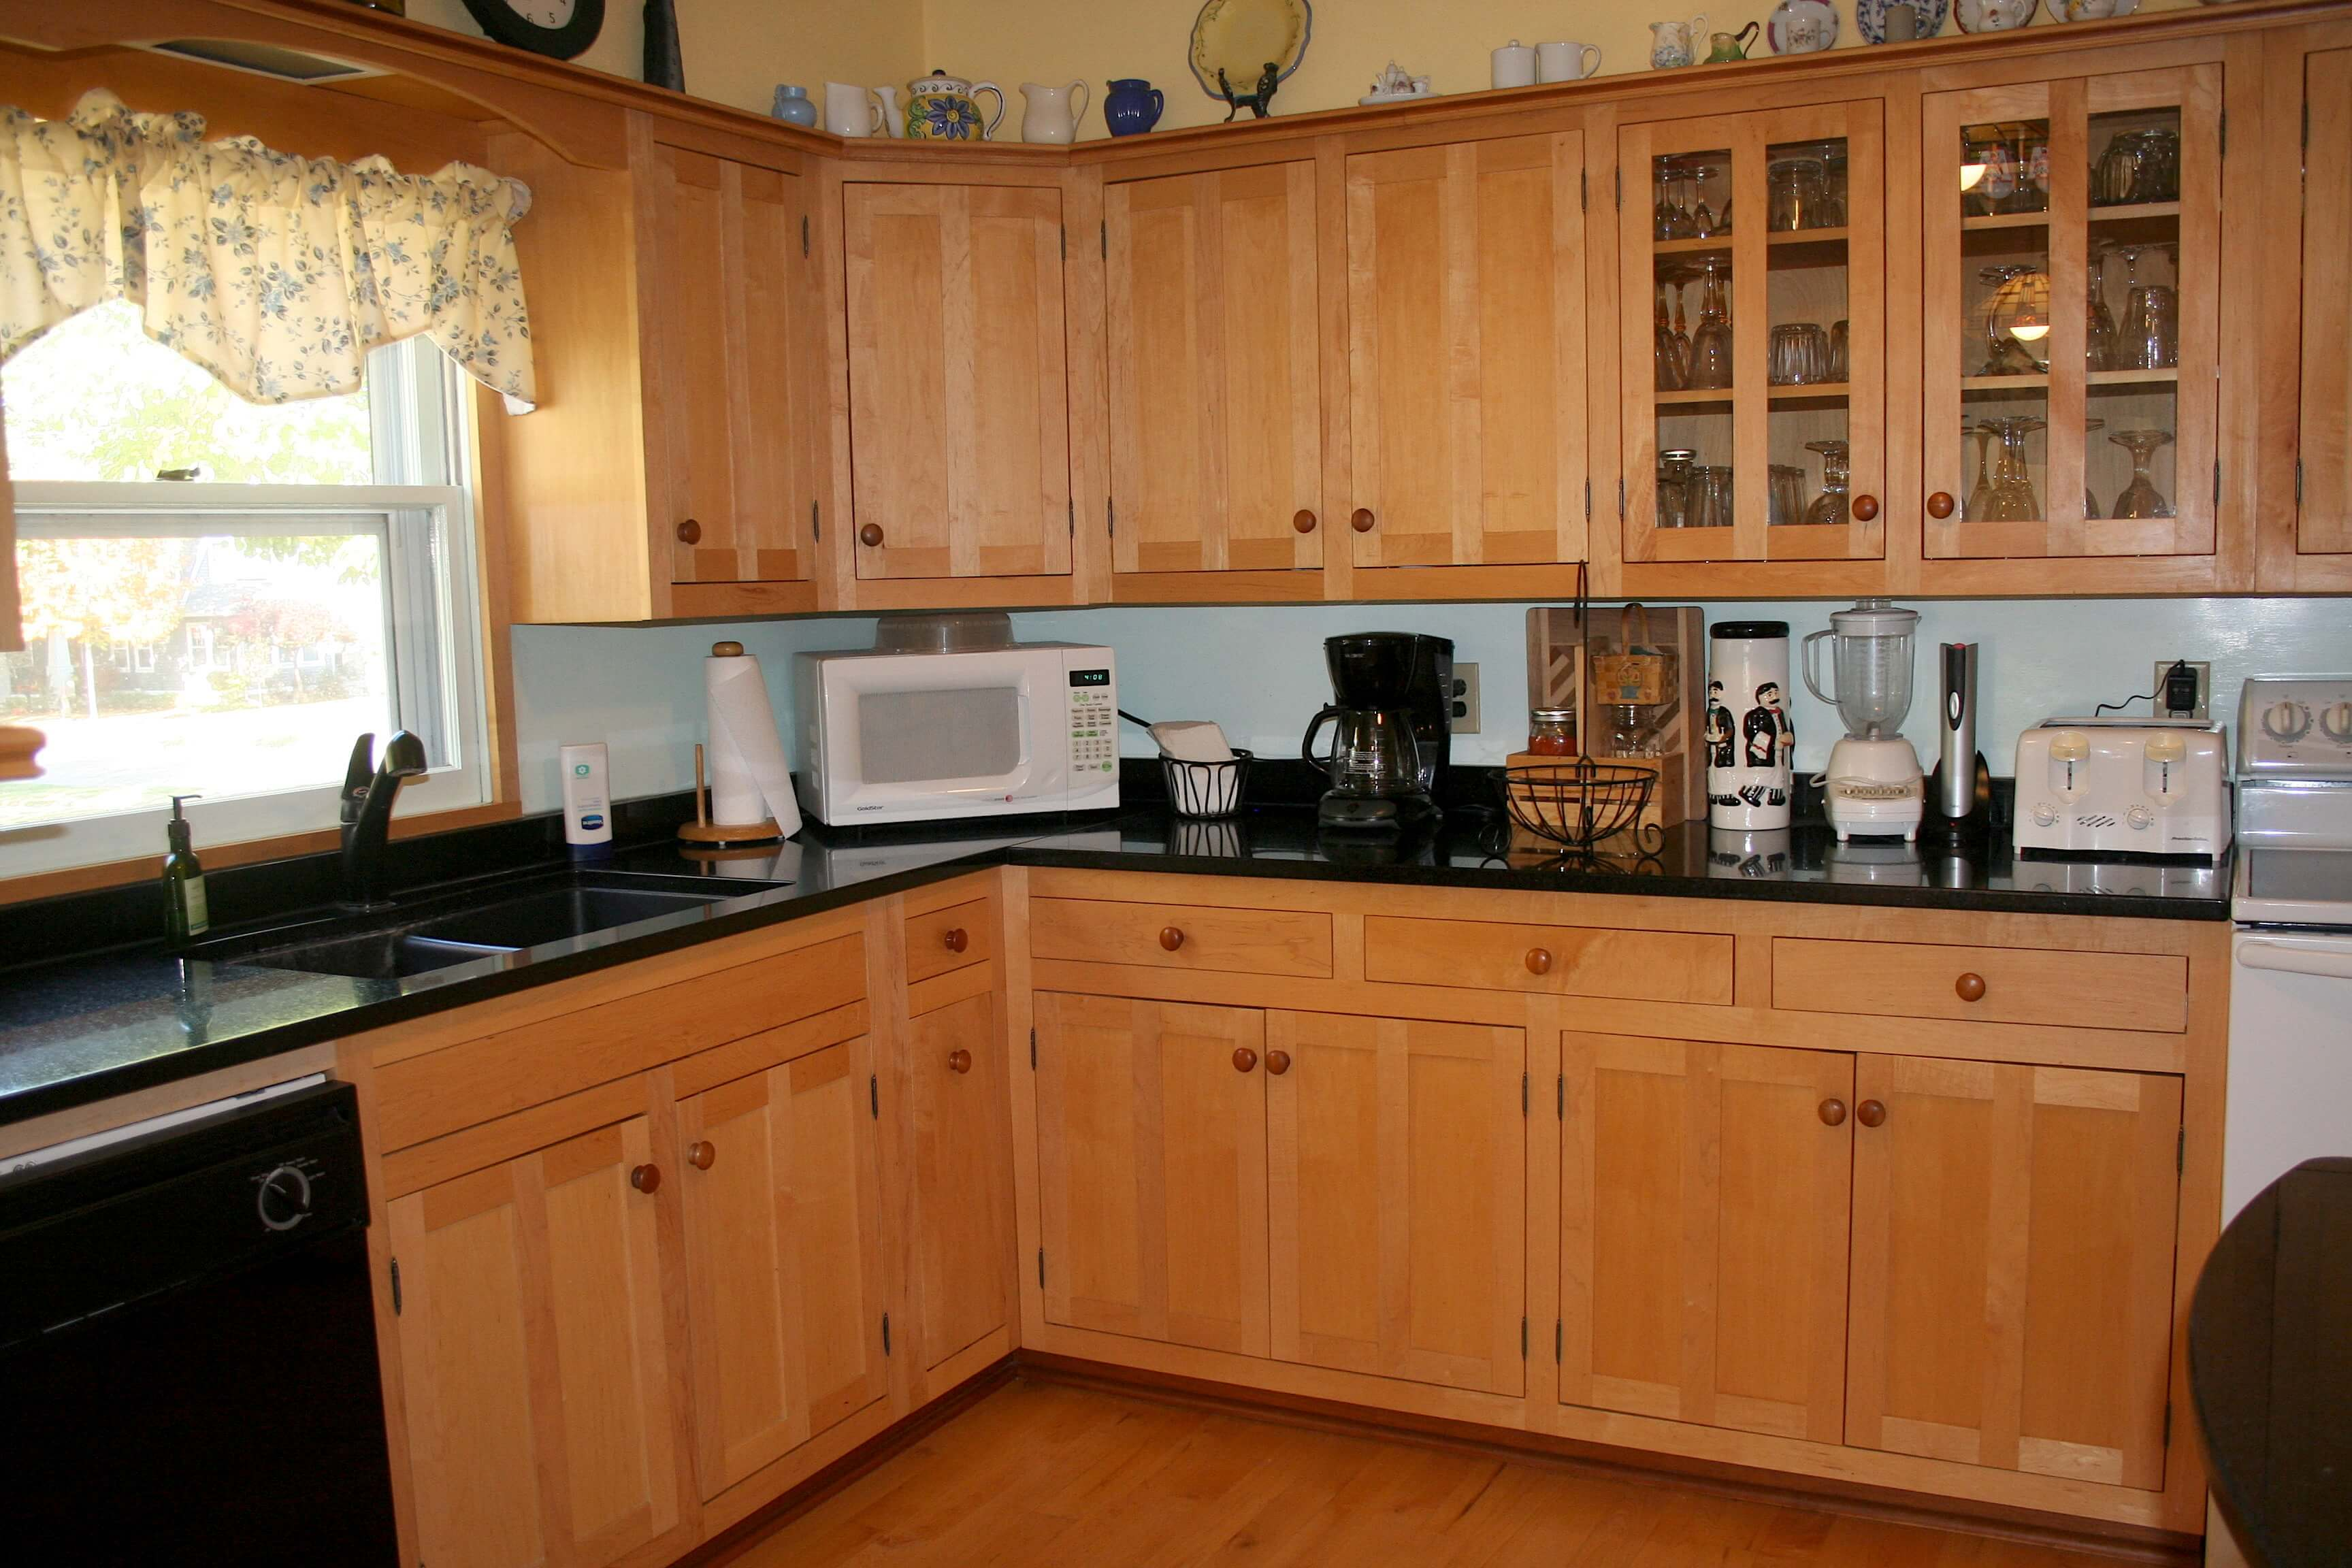 wood ideas raw gallery in custom materials countertop from view material countertops kitchen modern unusual